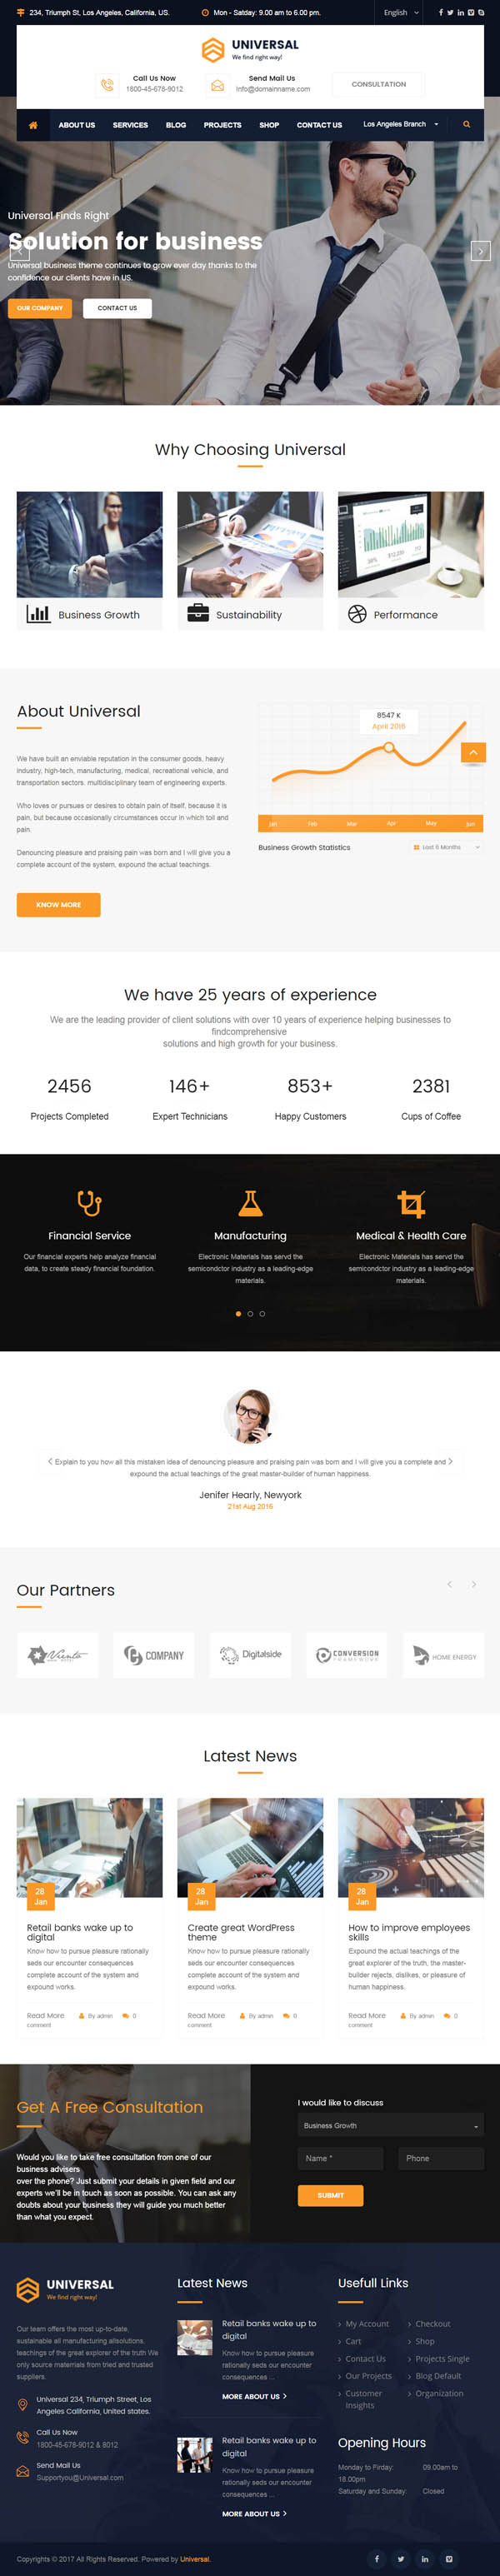 Universal : Business Consulting and Professional Services WordPress Theme